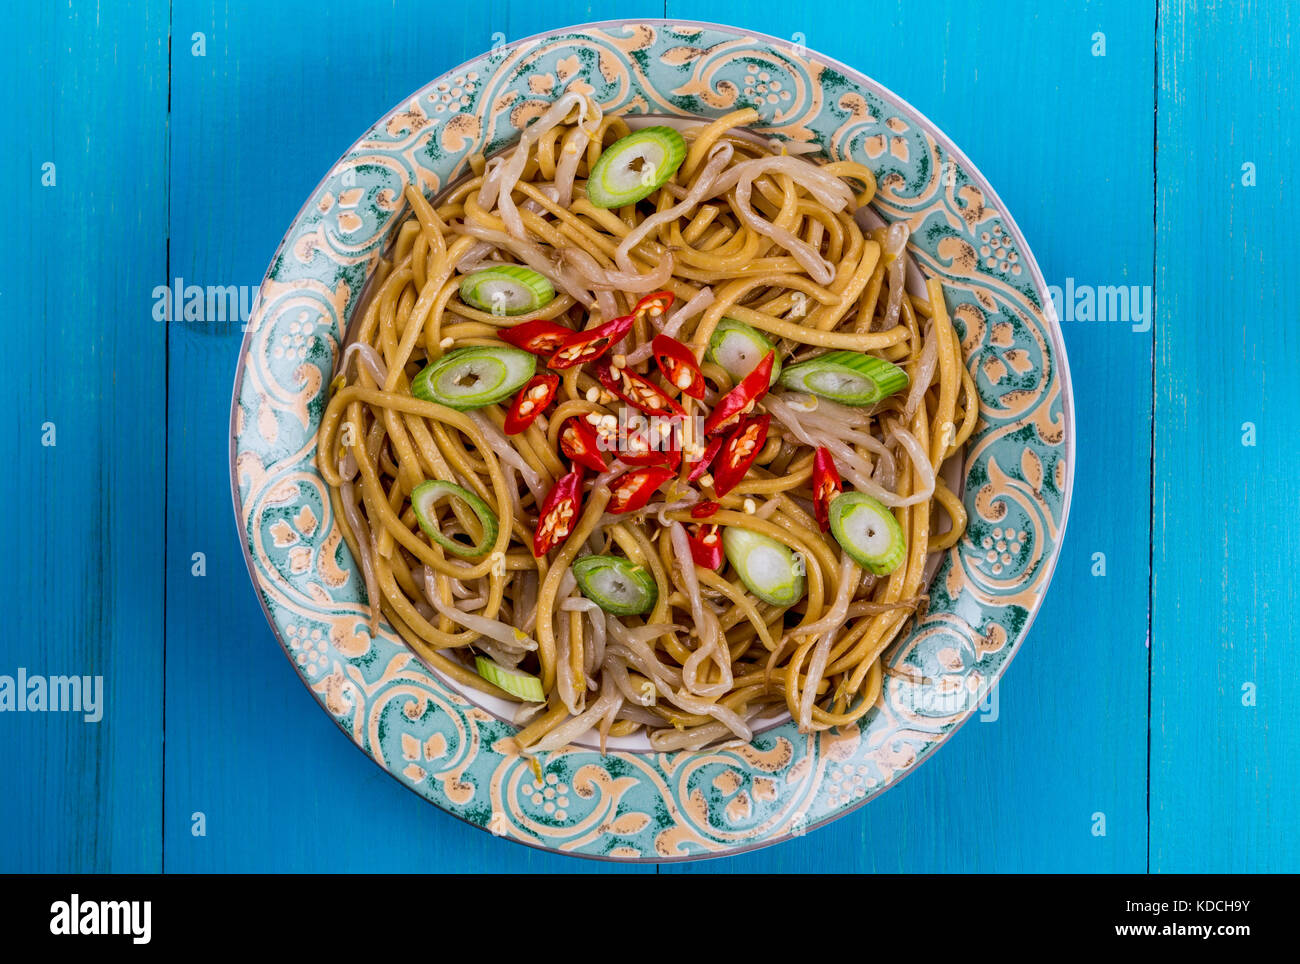 Chinese Style Wok Stir Fried Egg Noodles with Beansprouts and Red Chilli On A Blue Wooden Background - Stock Image